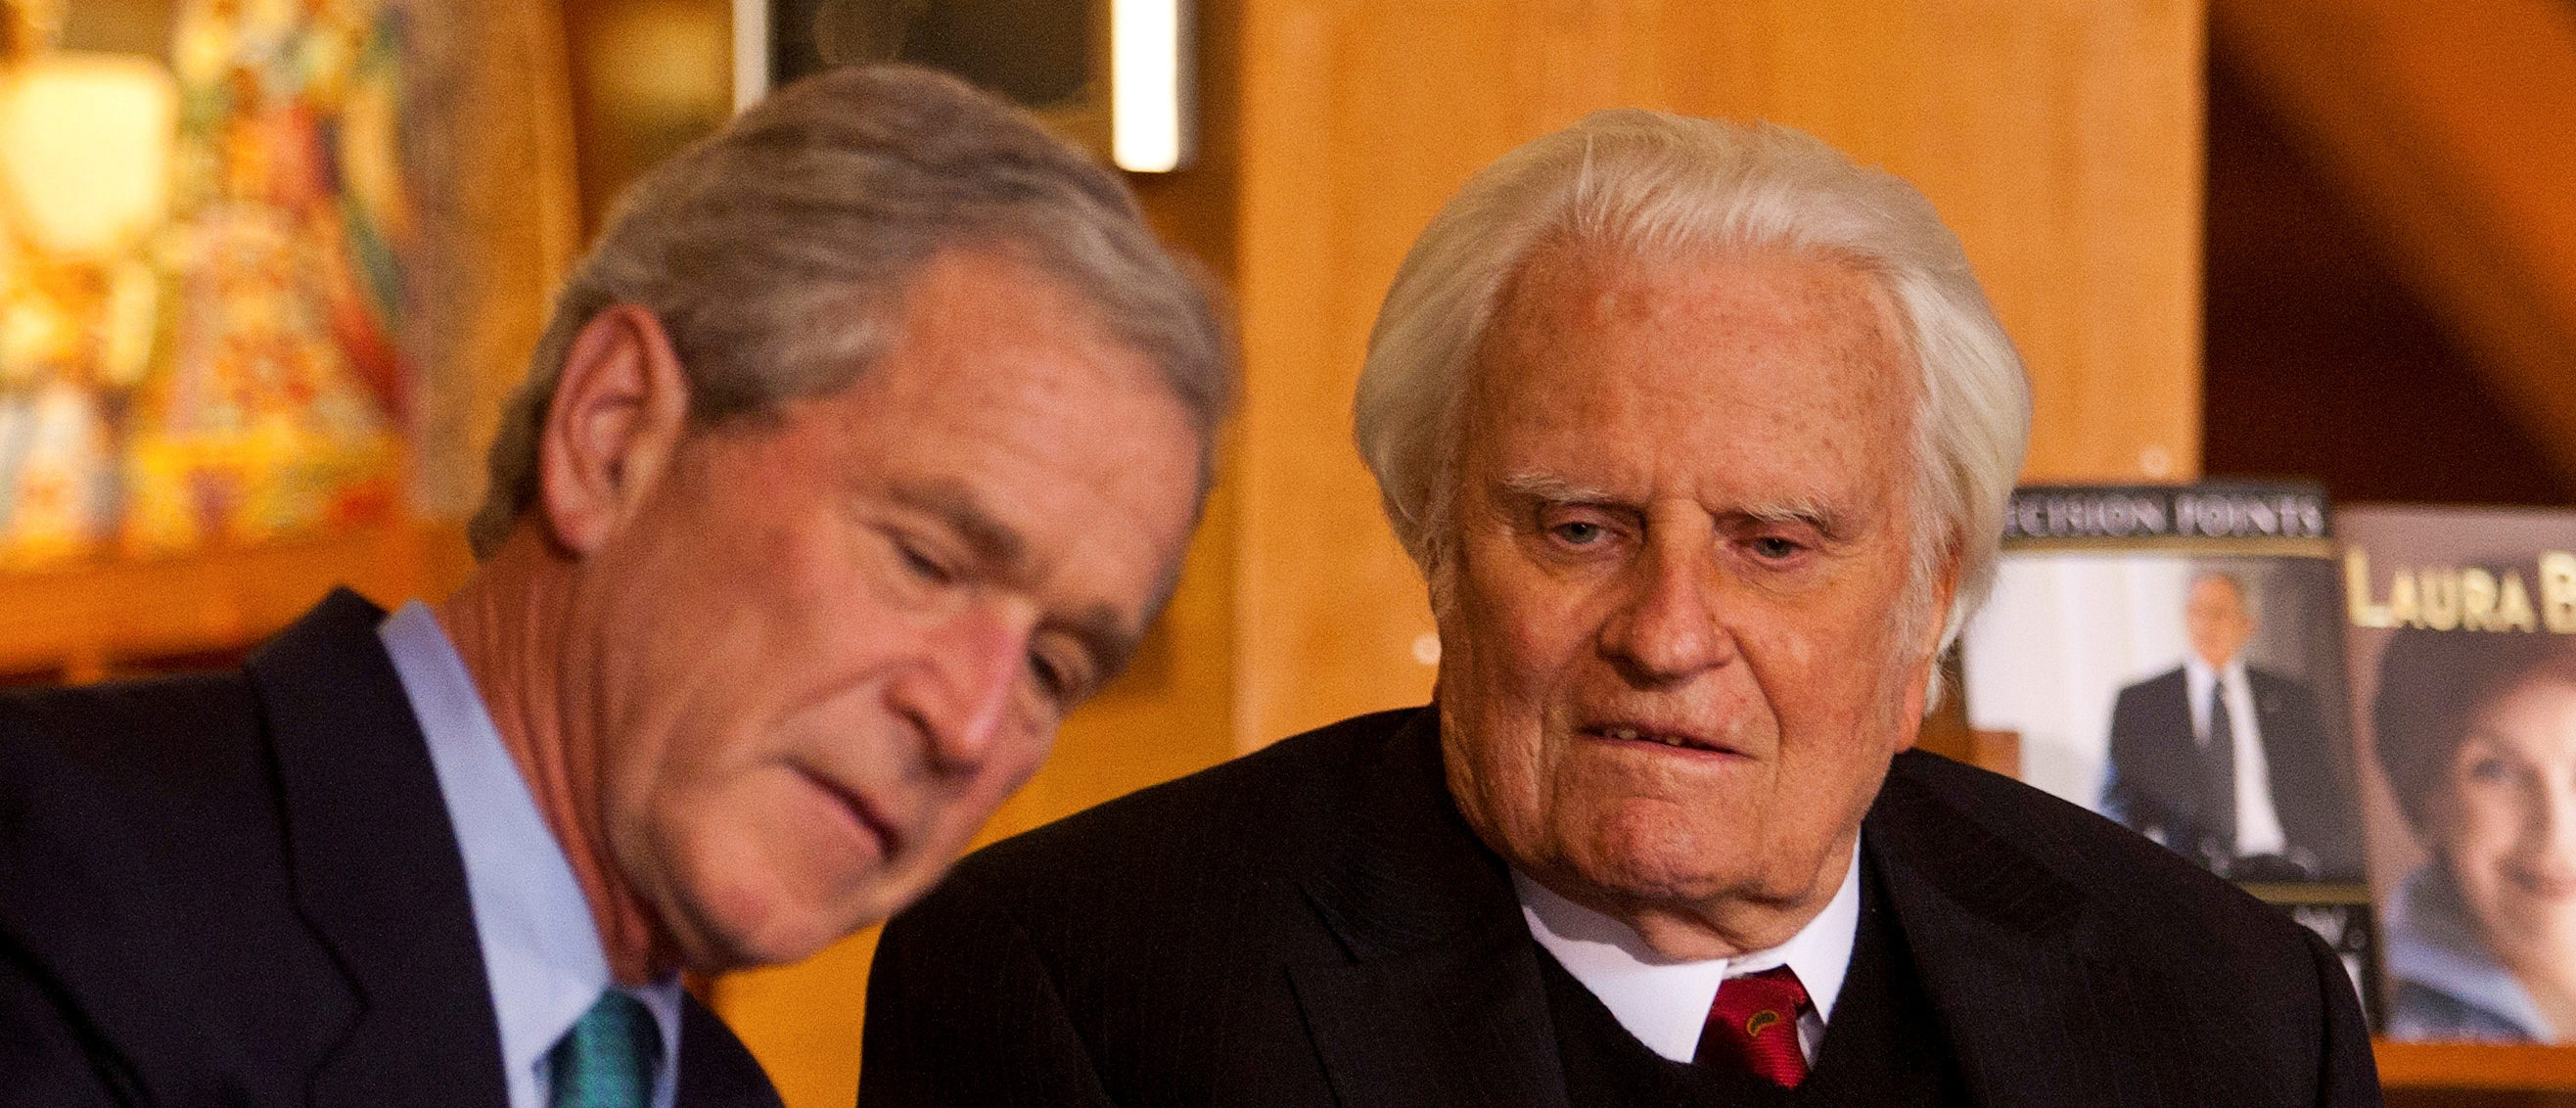 George W. Bush's Tribute To Billy Graham | The Daily Caller